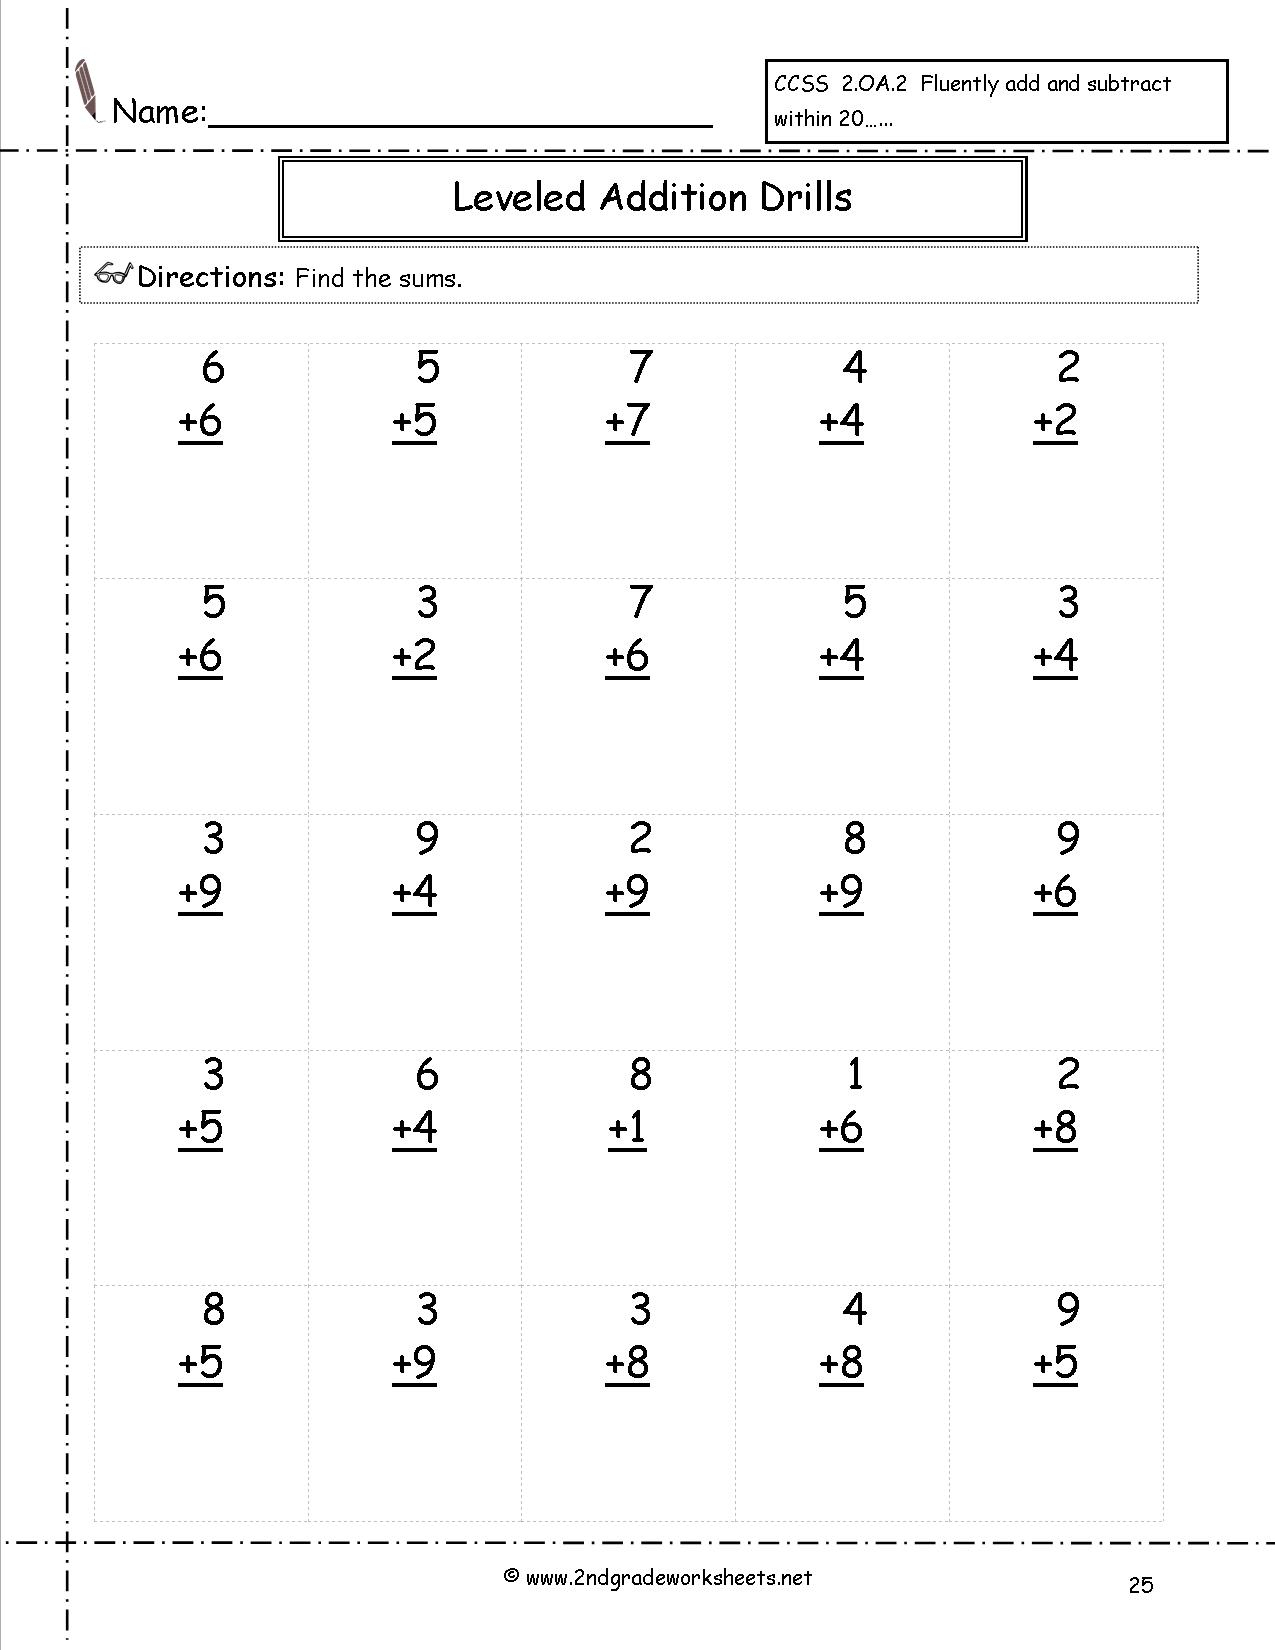 Free Math Worksheets And Printouts intended for Multiplication Worksheets Drills